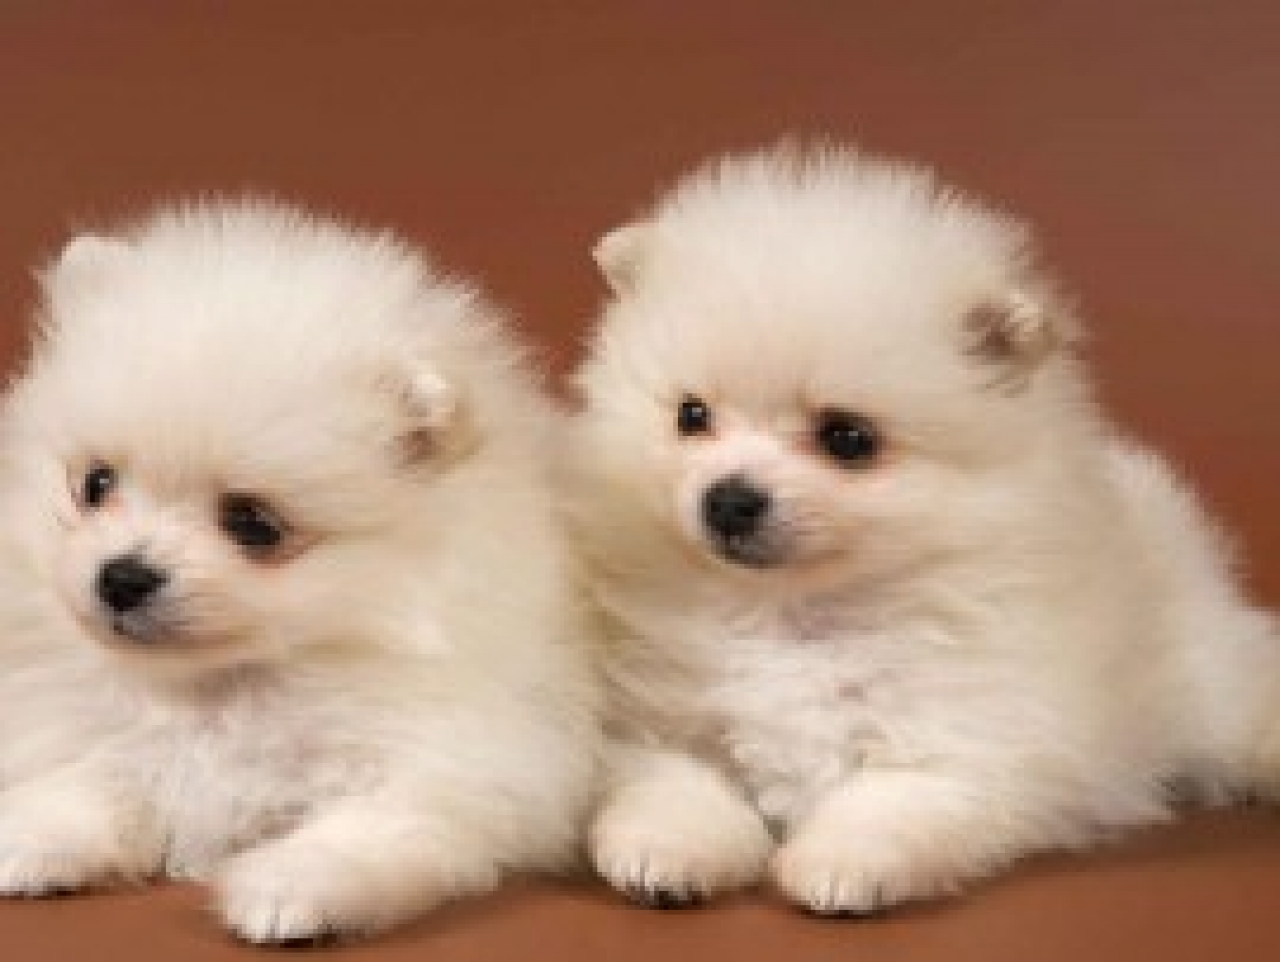 Cute PuppiesVery Cute Puppies Wallpapers